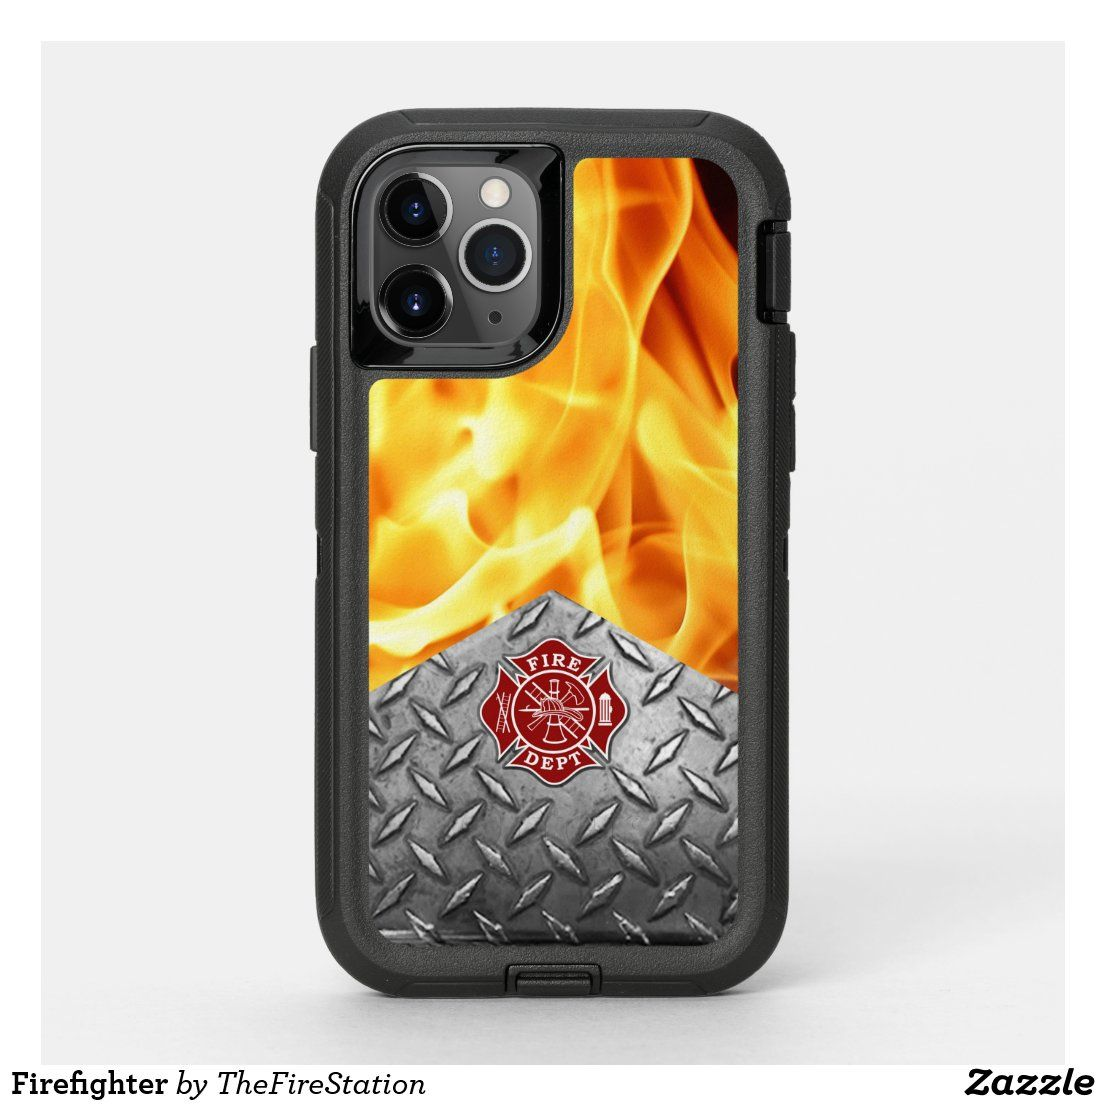 Firefighter otterbox iphone case in 2020